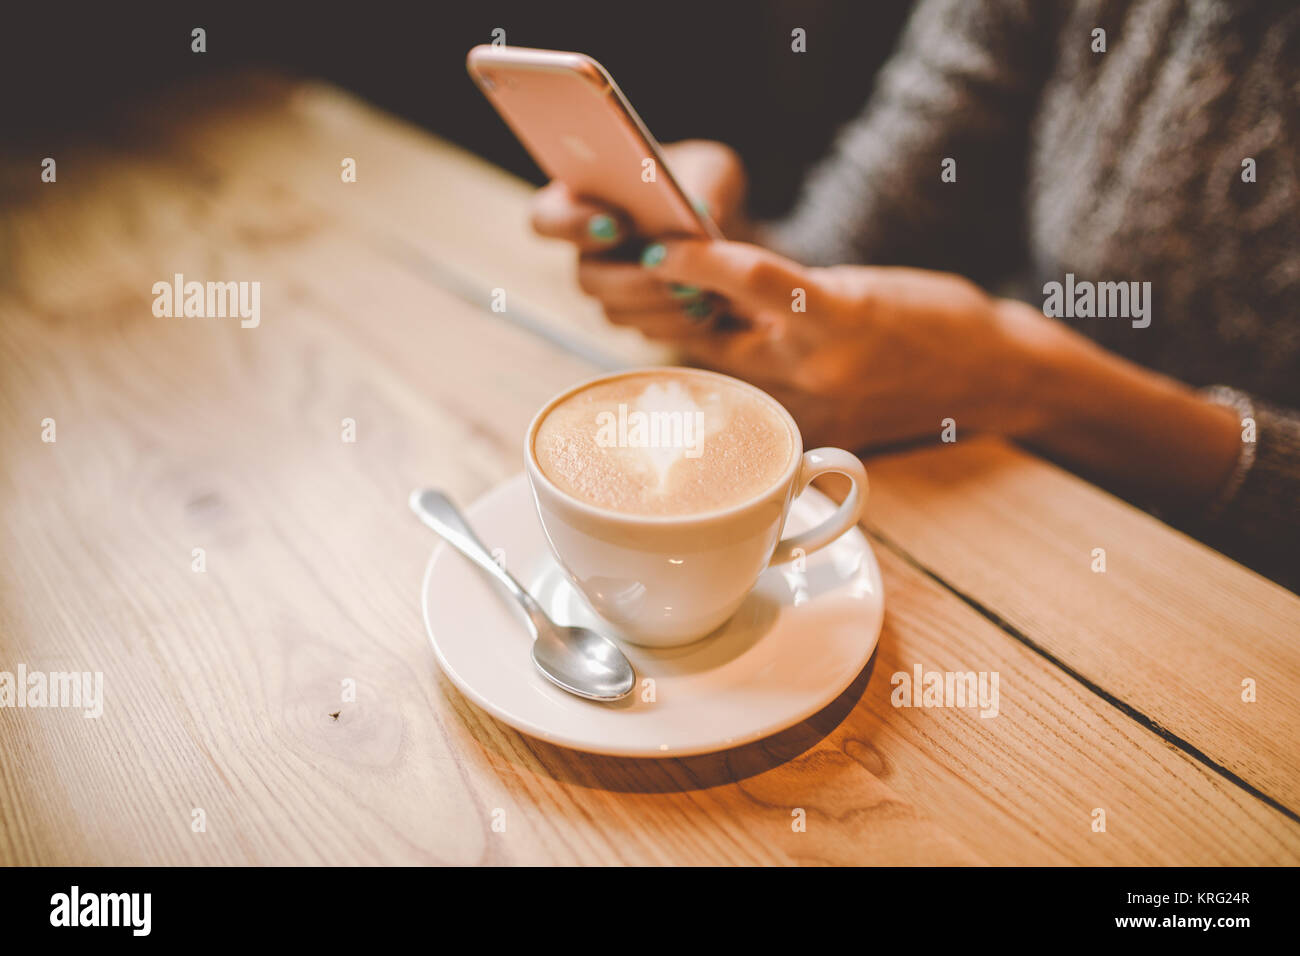 hands close-up of a beautiful young girl uses,types text on a mobile phone at a wooden table near a window and drinks - Stock Image